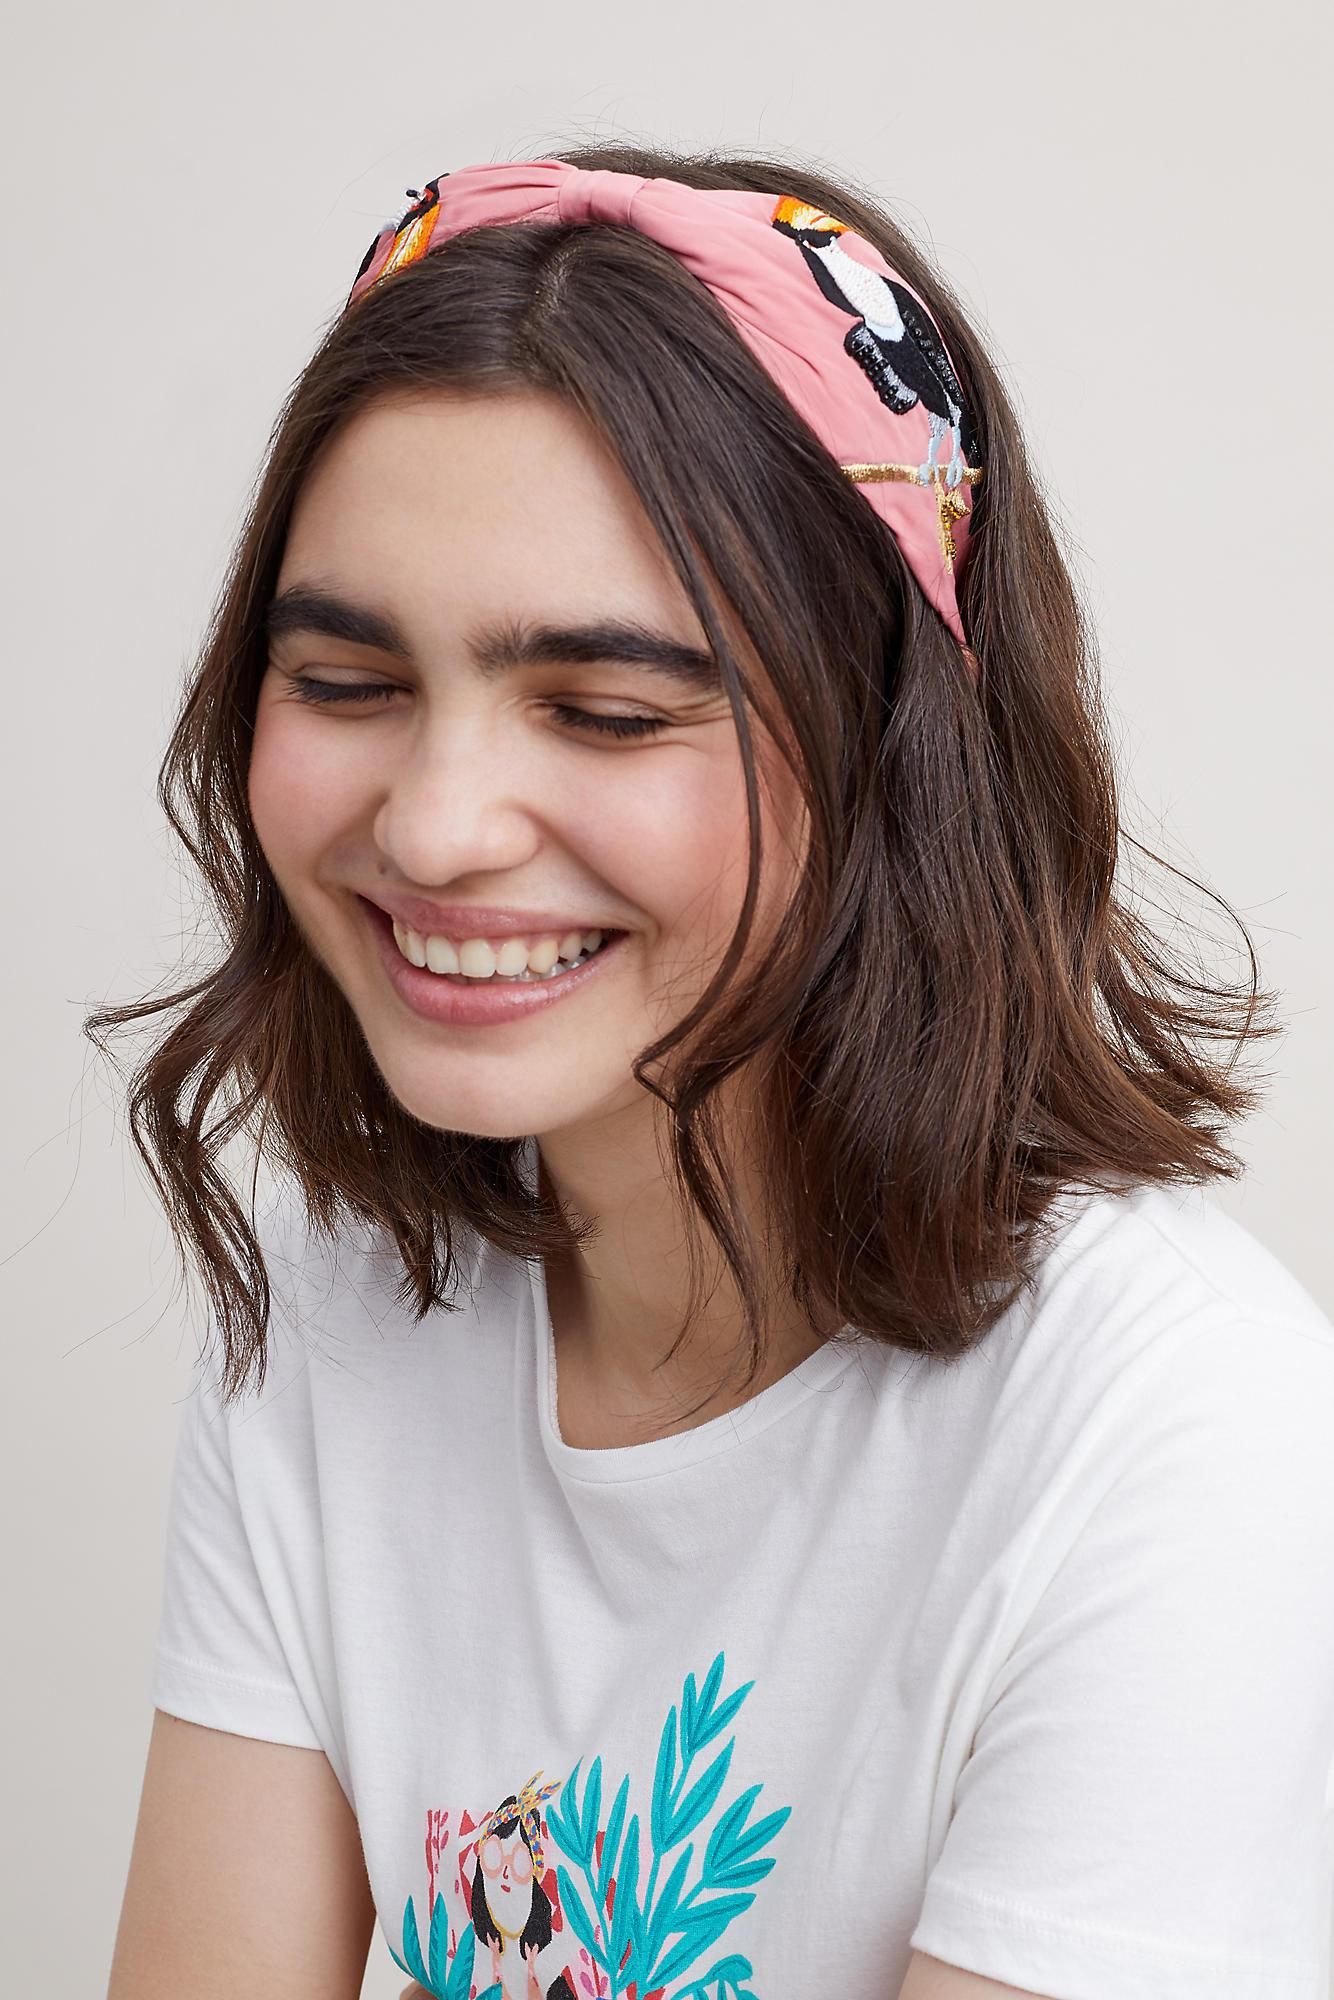 Anthropologie Lisa Toucan-embroidered Headband in Pink - Lyst 2a33b85f89e